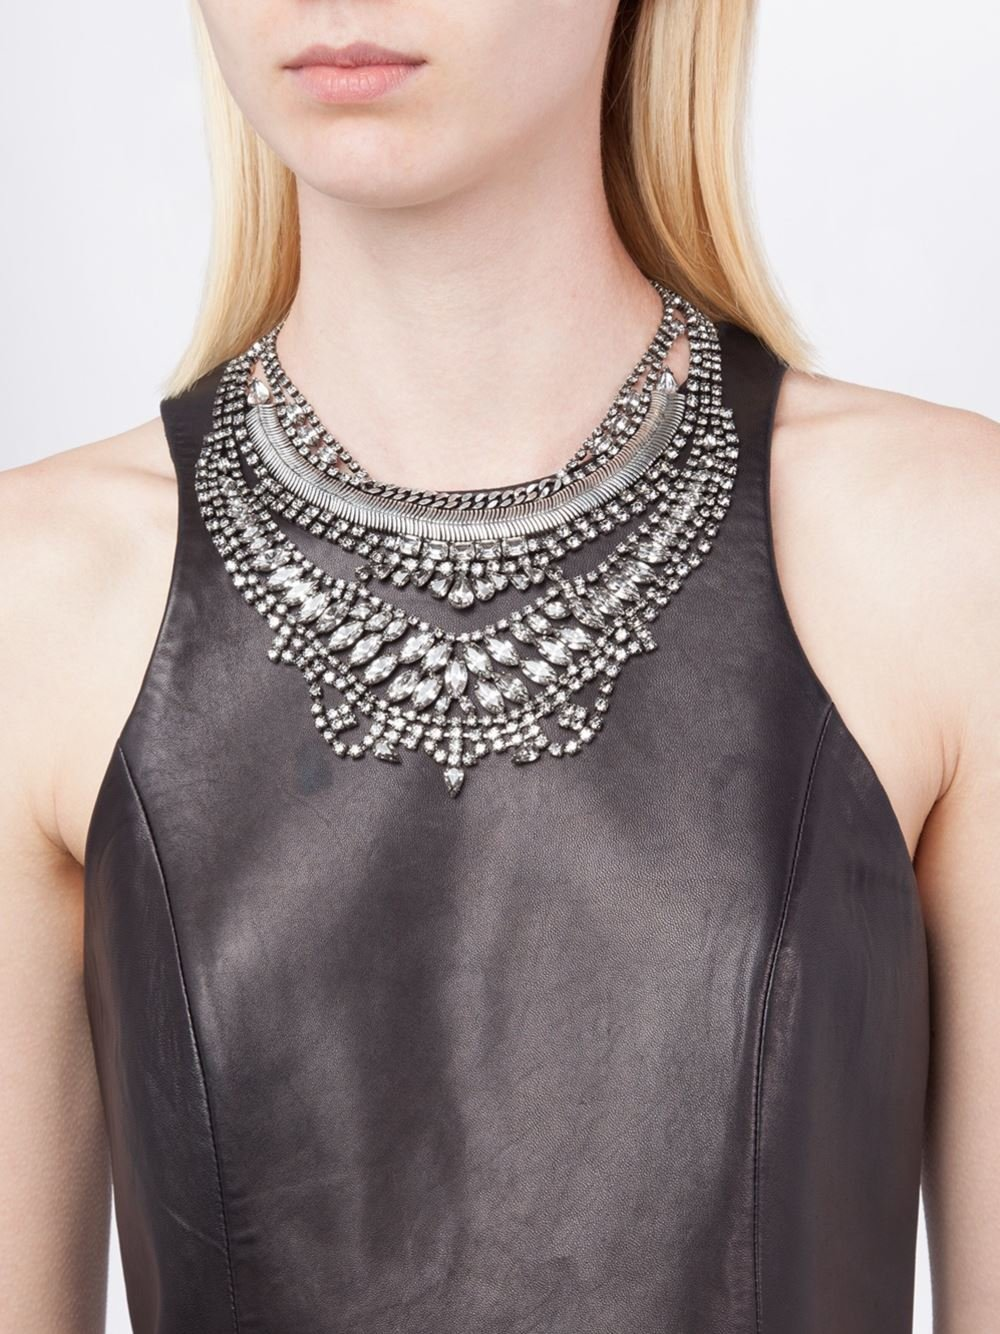 DYLANLEX 'bobbie' Necklace in Metallic (Blue)